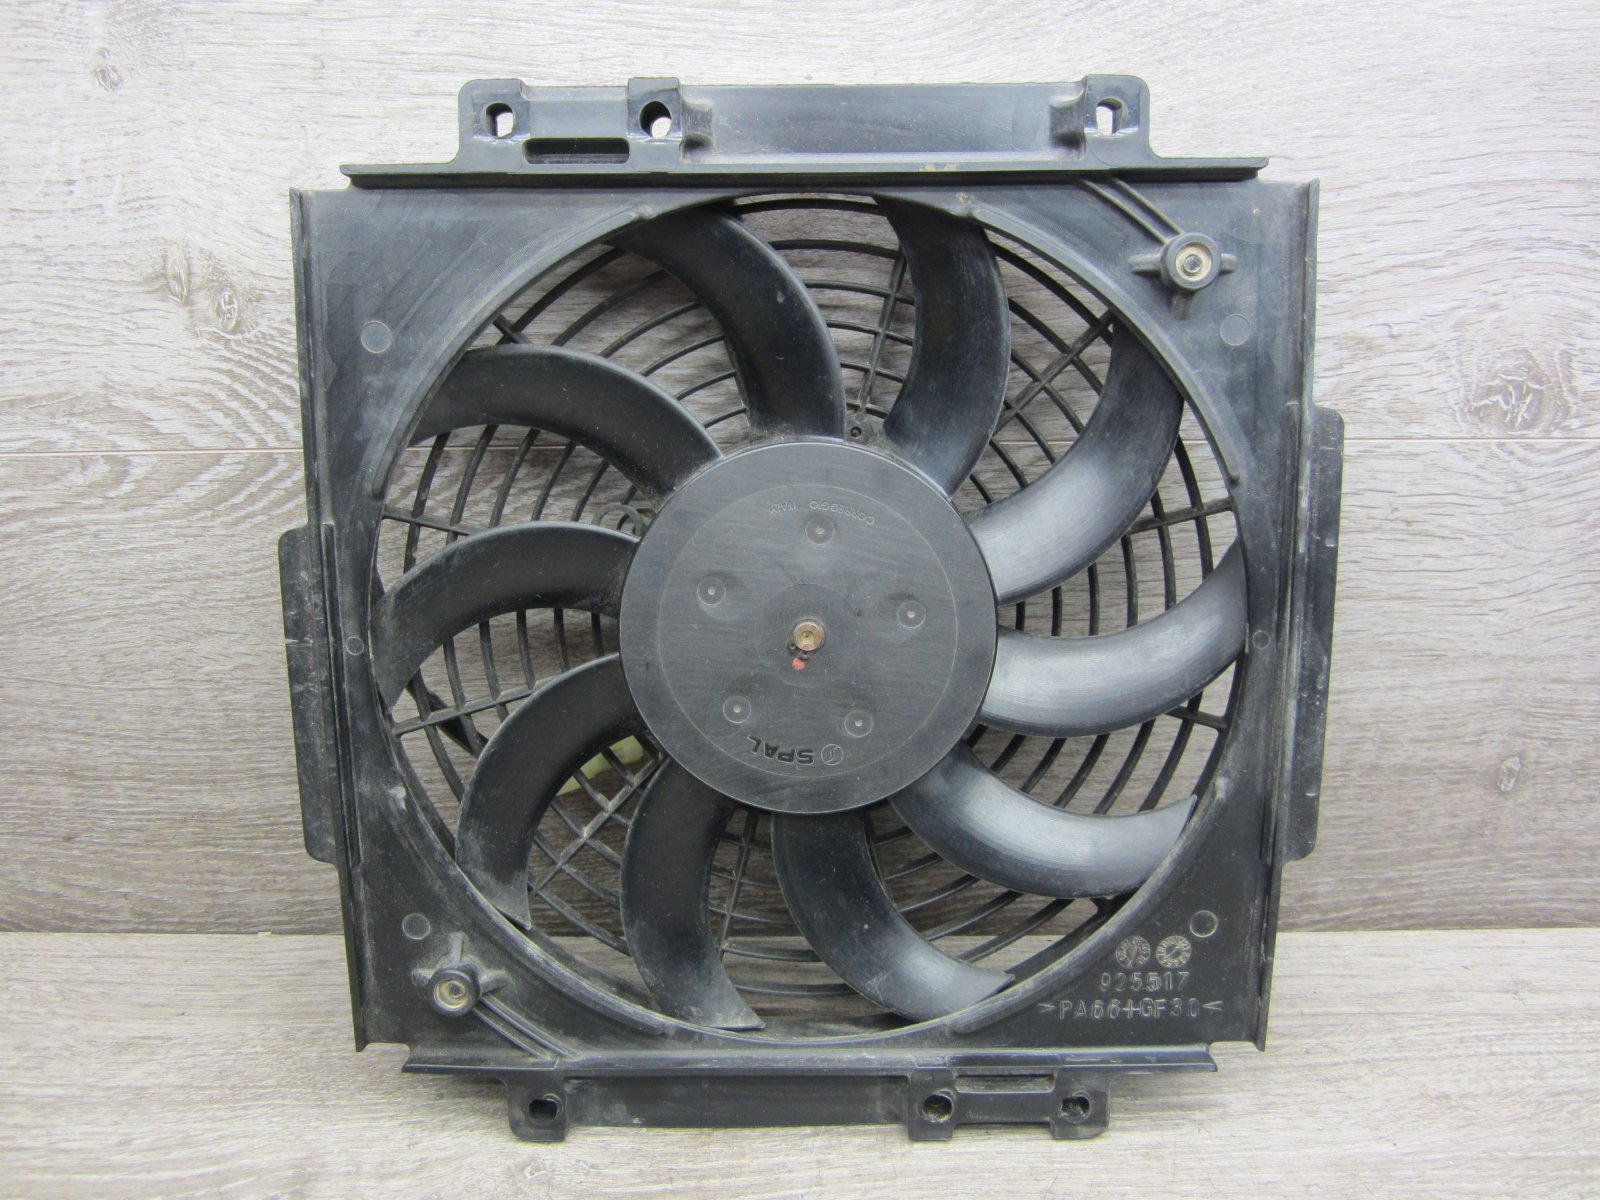 quad tgb blade target 500 525 550 blower wheel fan fan. Black Bedroom Furniture Sets. Home Design Ideas